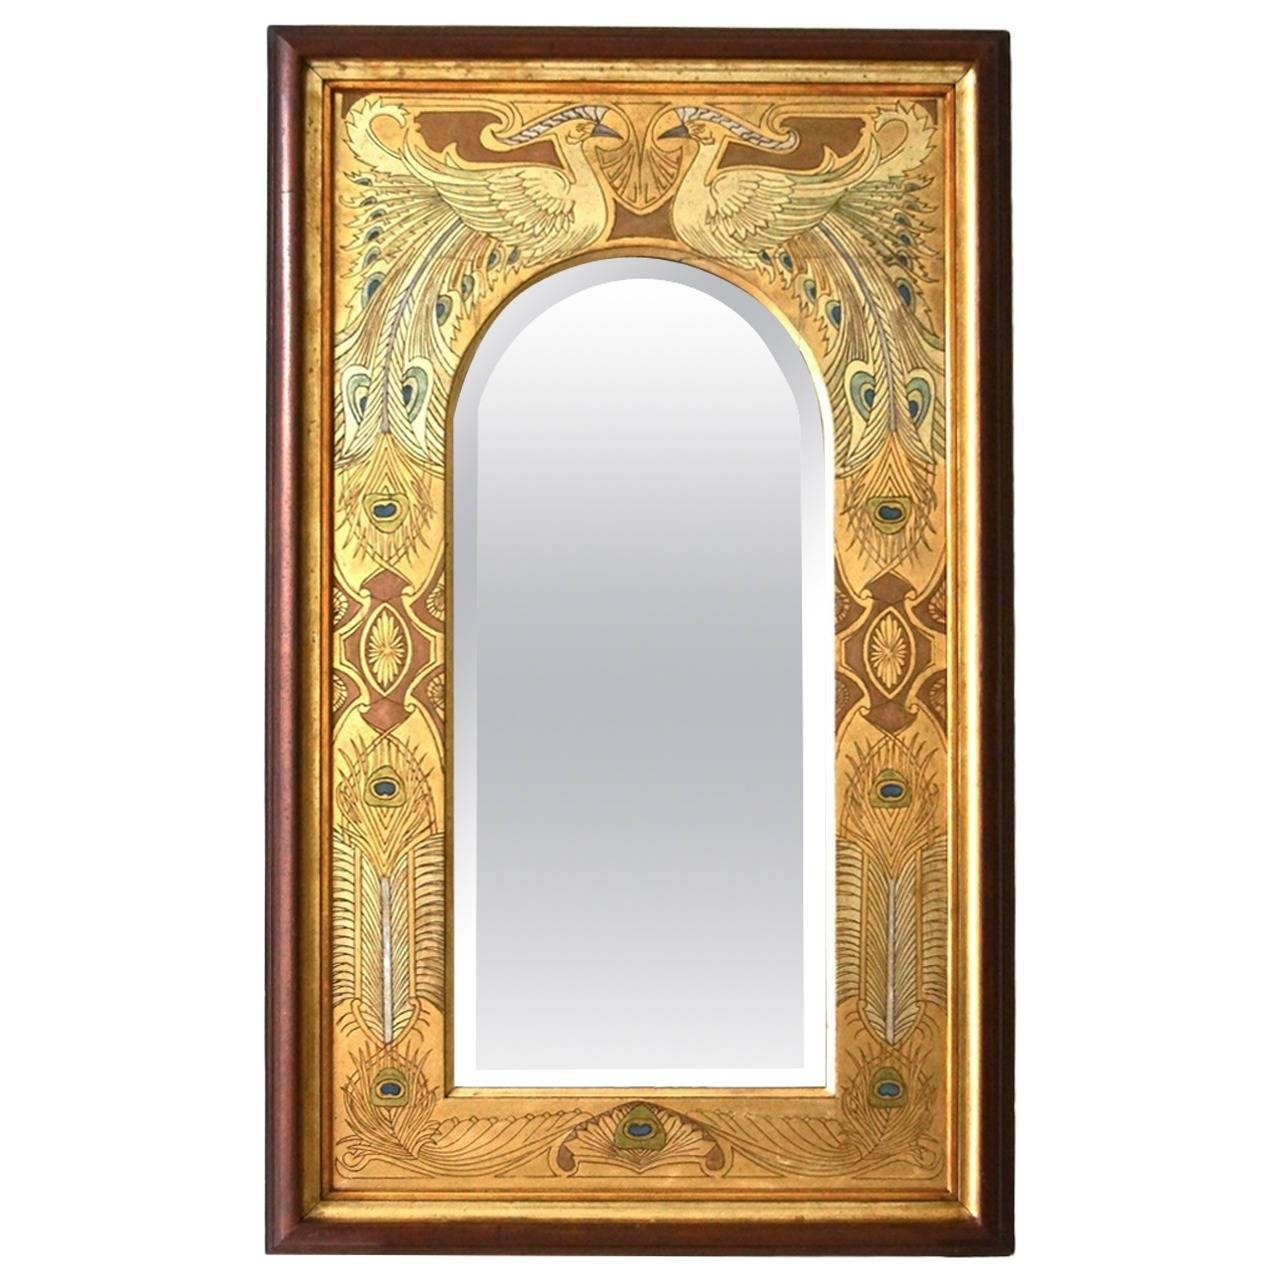 Art Nouveau Wall Mirrors – 53 For Sale At 1Stdibs Throughout Art Nouveau Mirrors (View 3 of 25)